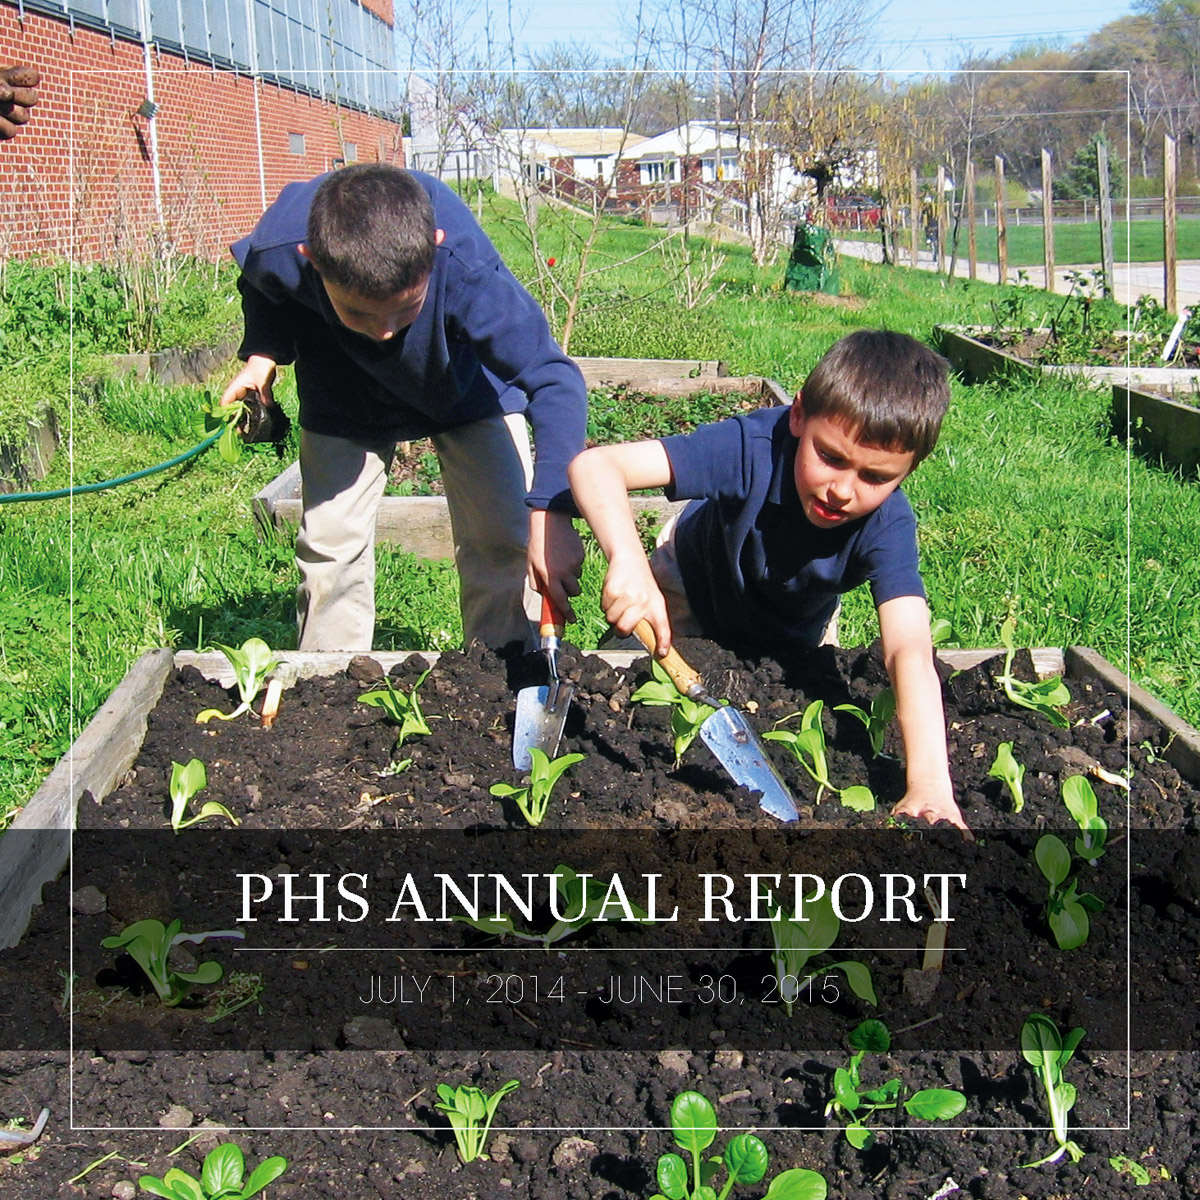 Pennsylvania Horticultural Society took grand prize for a story map of the organization's 2015 annual report.